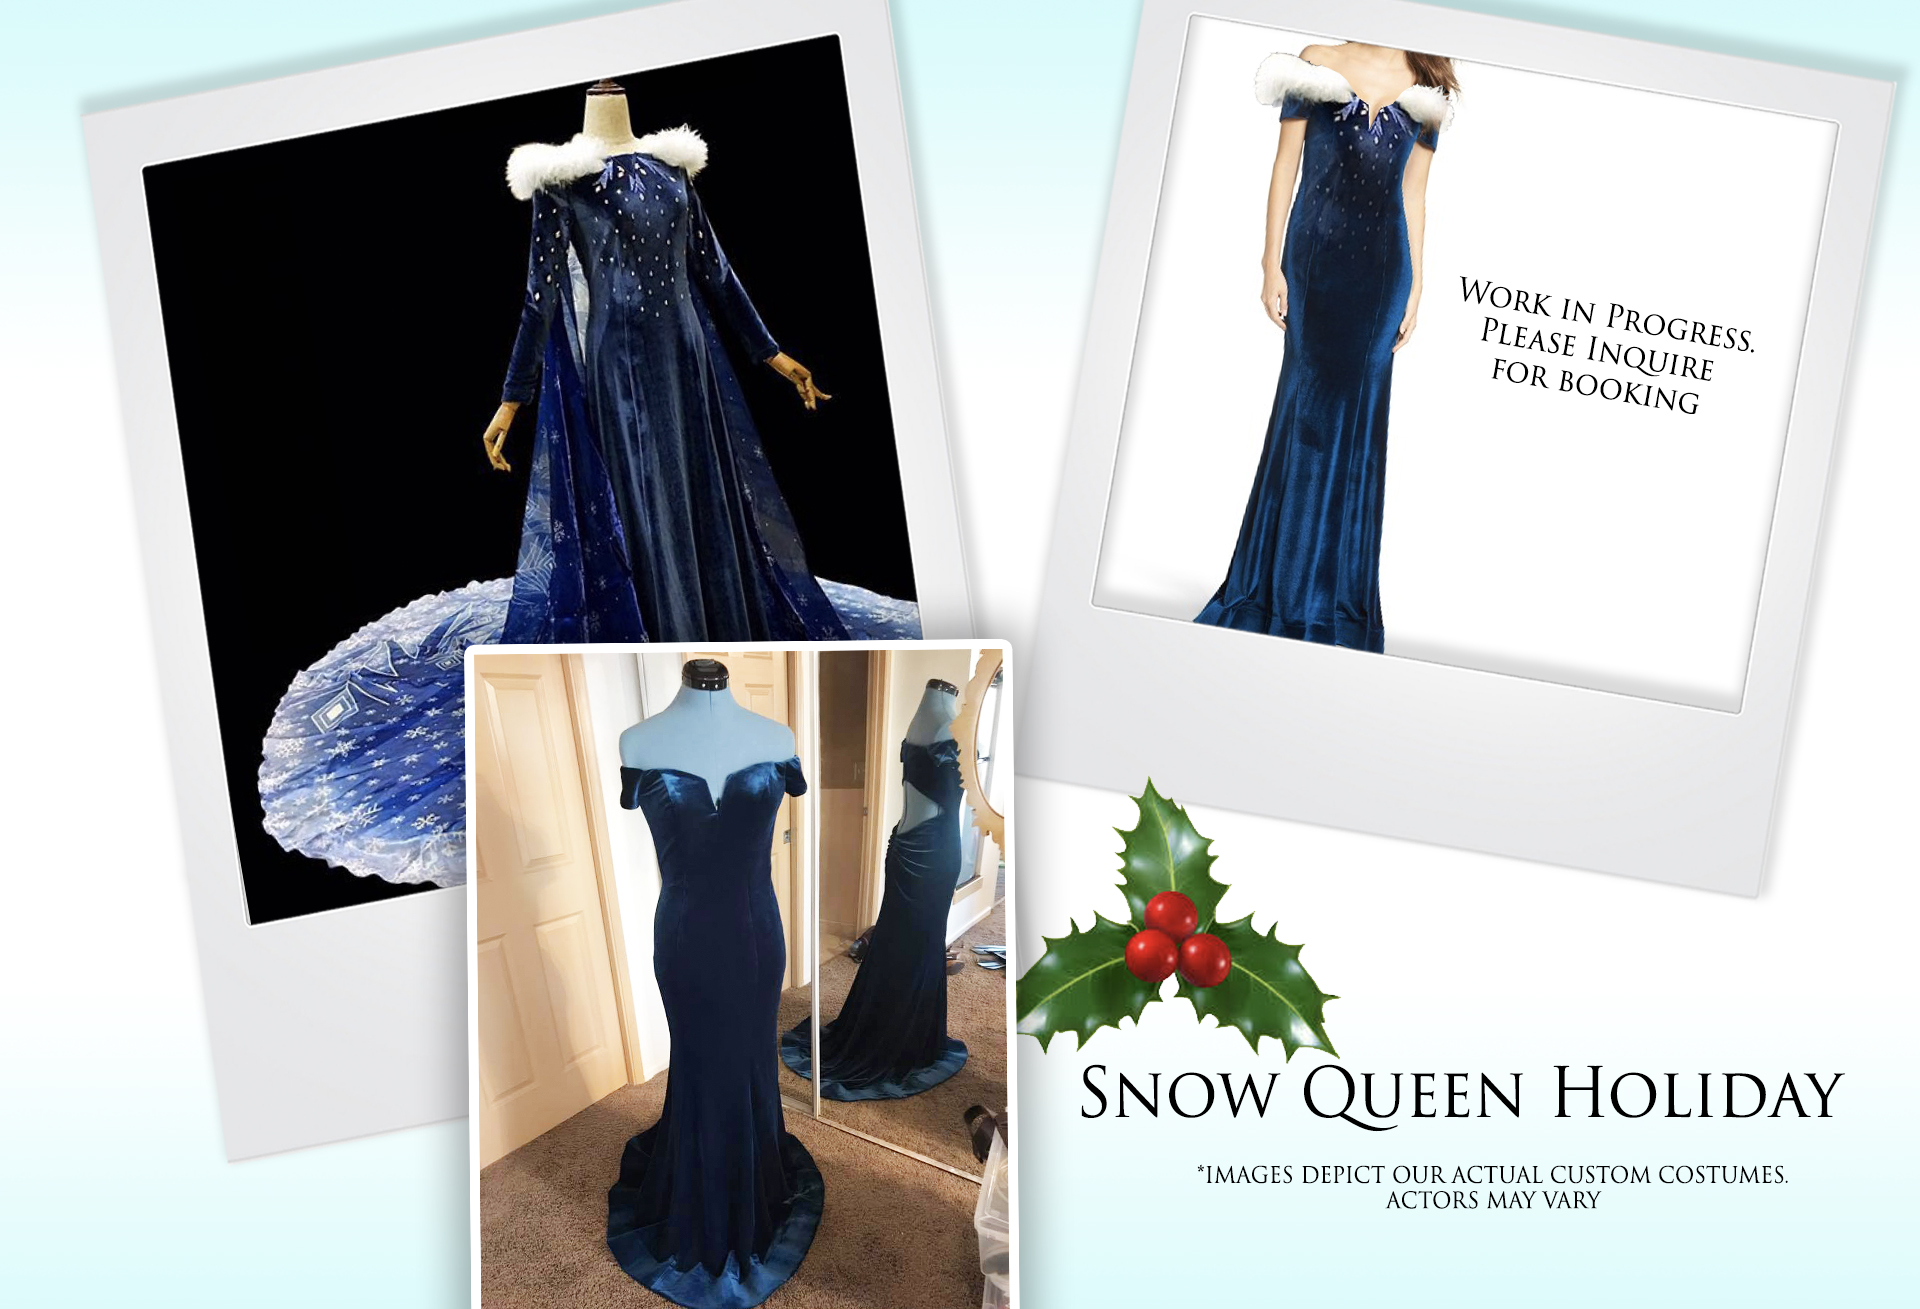 Snow Queen Holiday